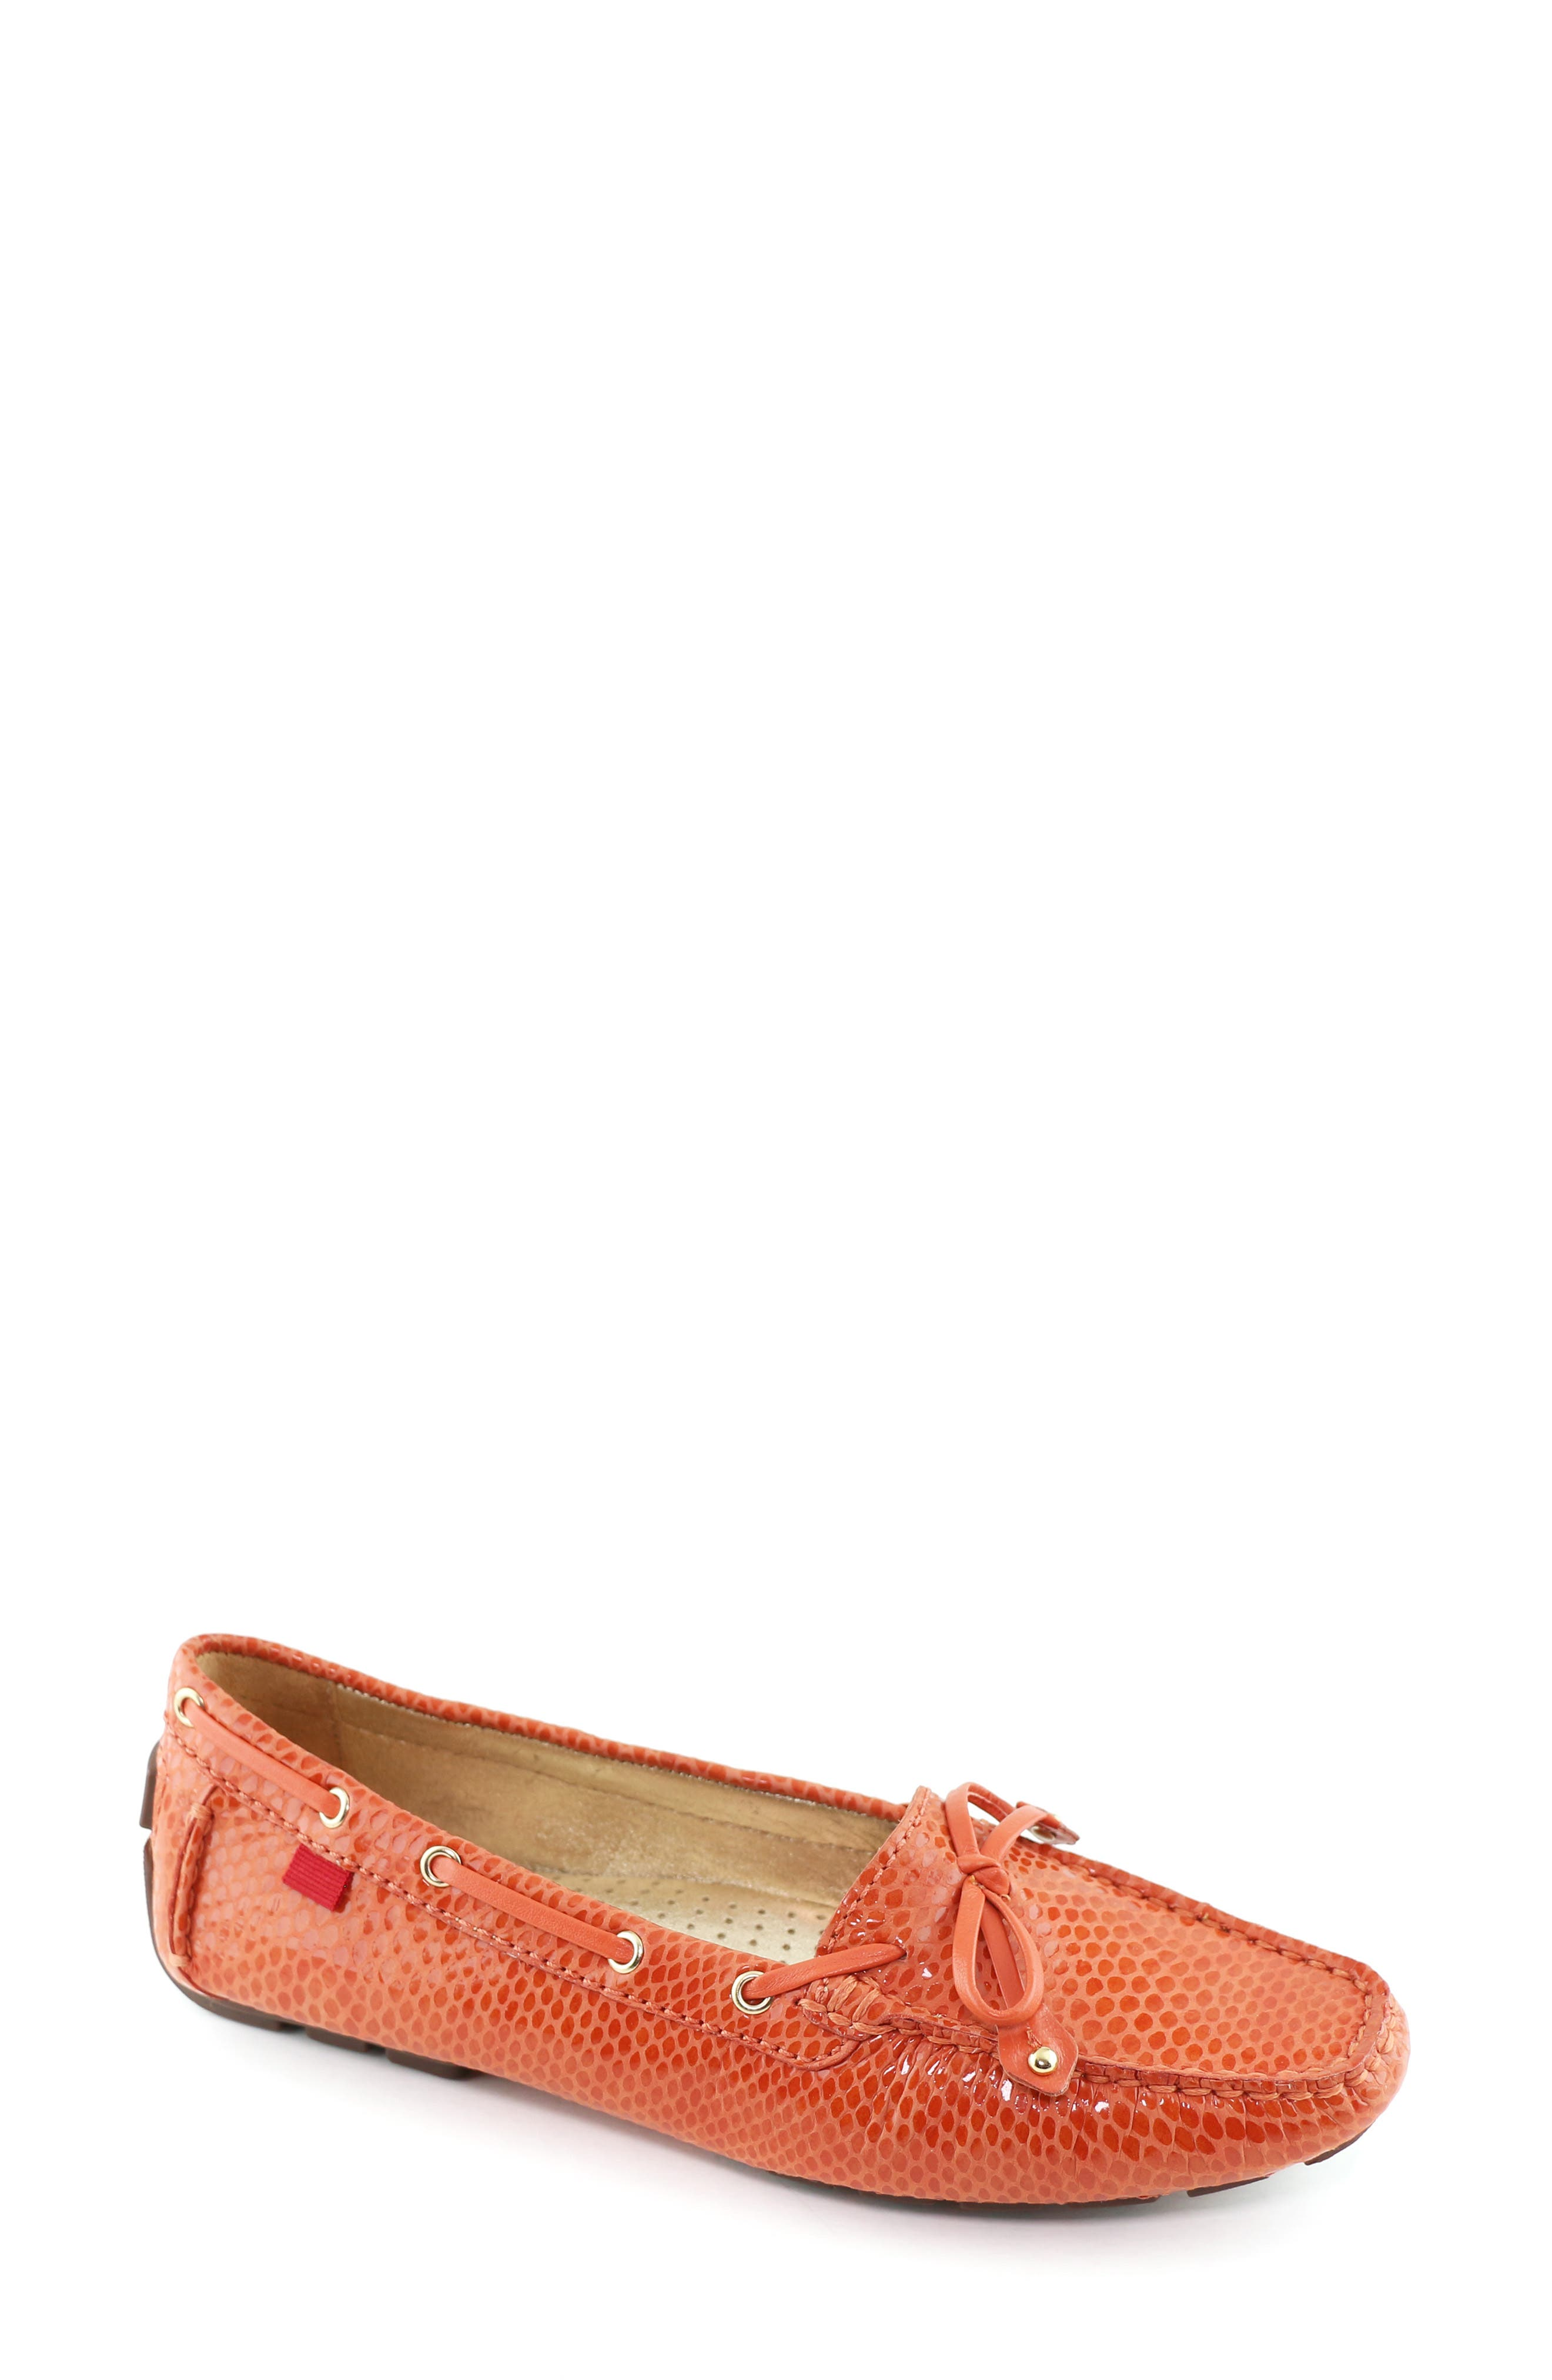 MARC JOSEPH NEW YORK 'Cypress Hill' Loafer, Main, color, CORAL SNAKE PRINT LEATHER